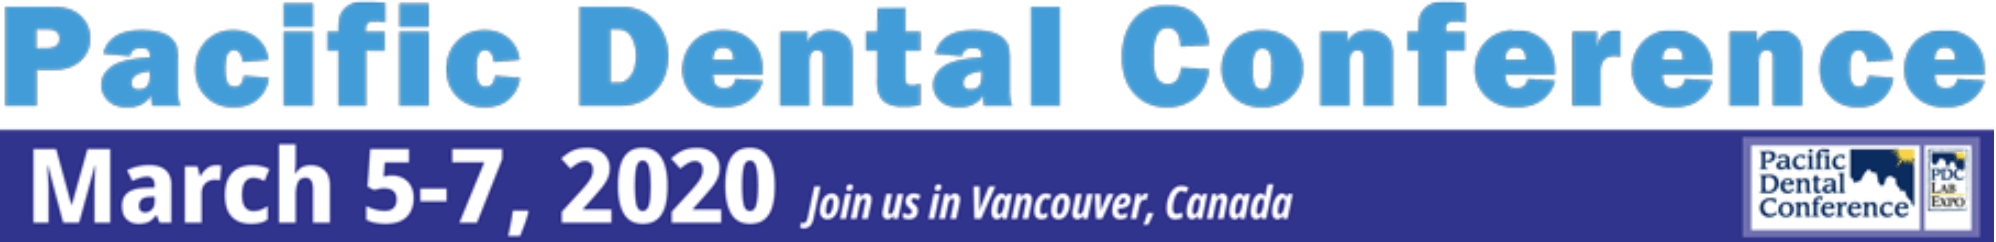 pacific dental conference logo 2020